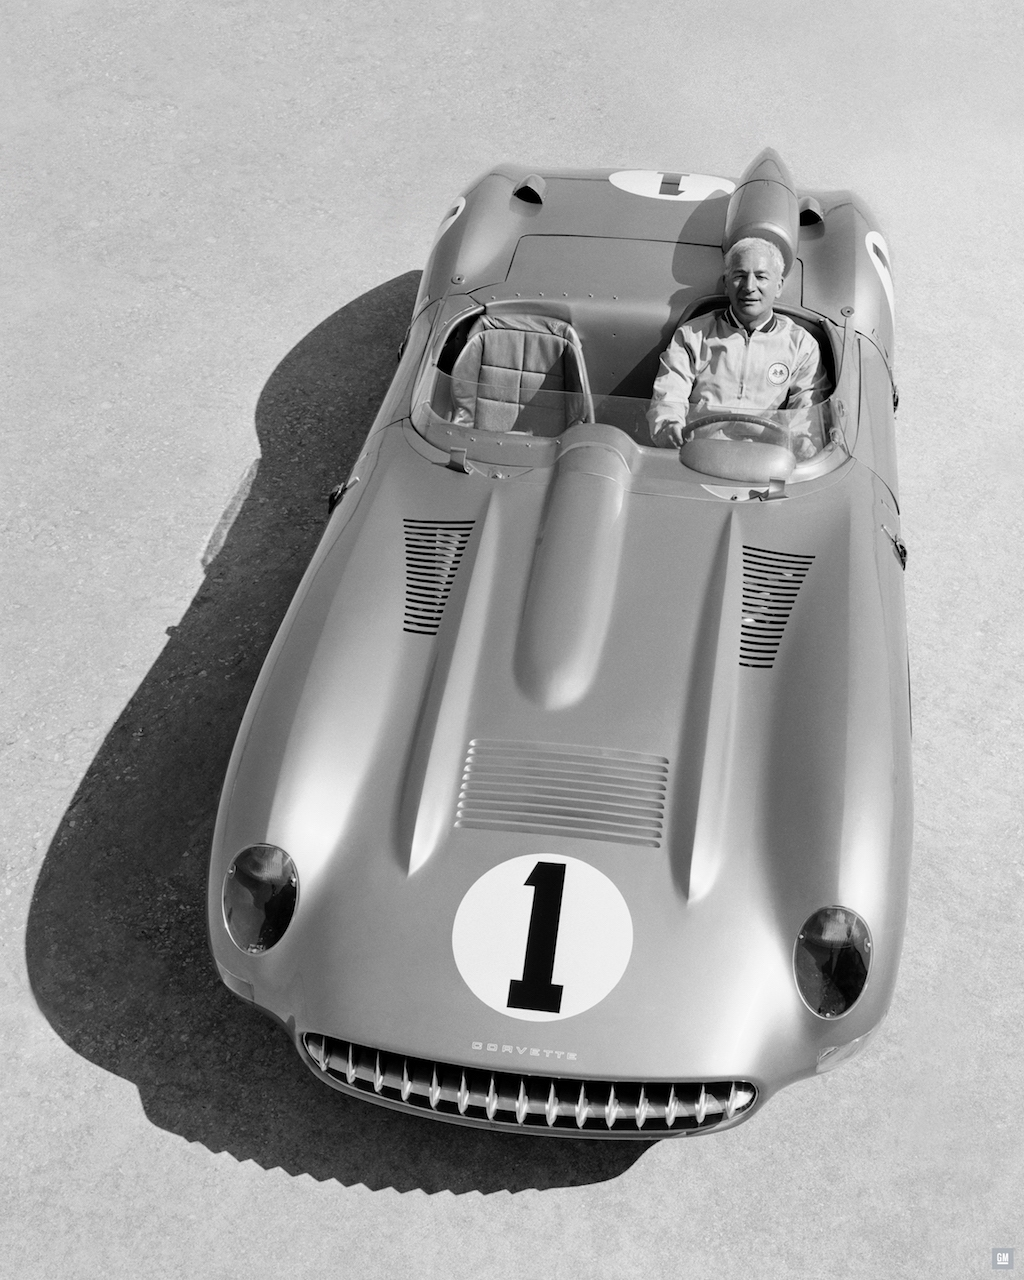 1957 Chevrolet Corvette SS Race Car Piloted by Zora Arkus-Duntov